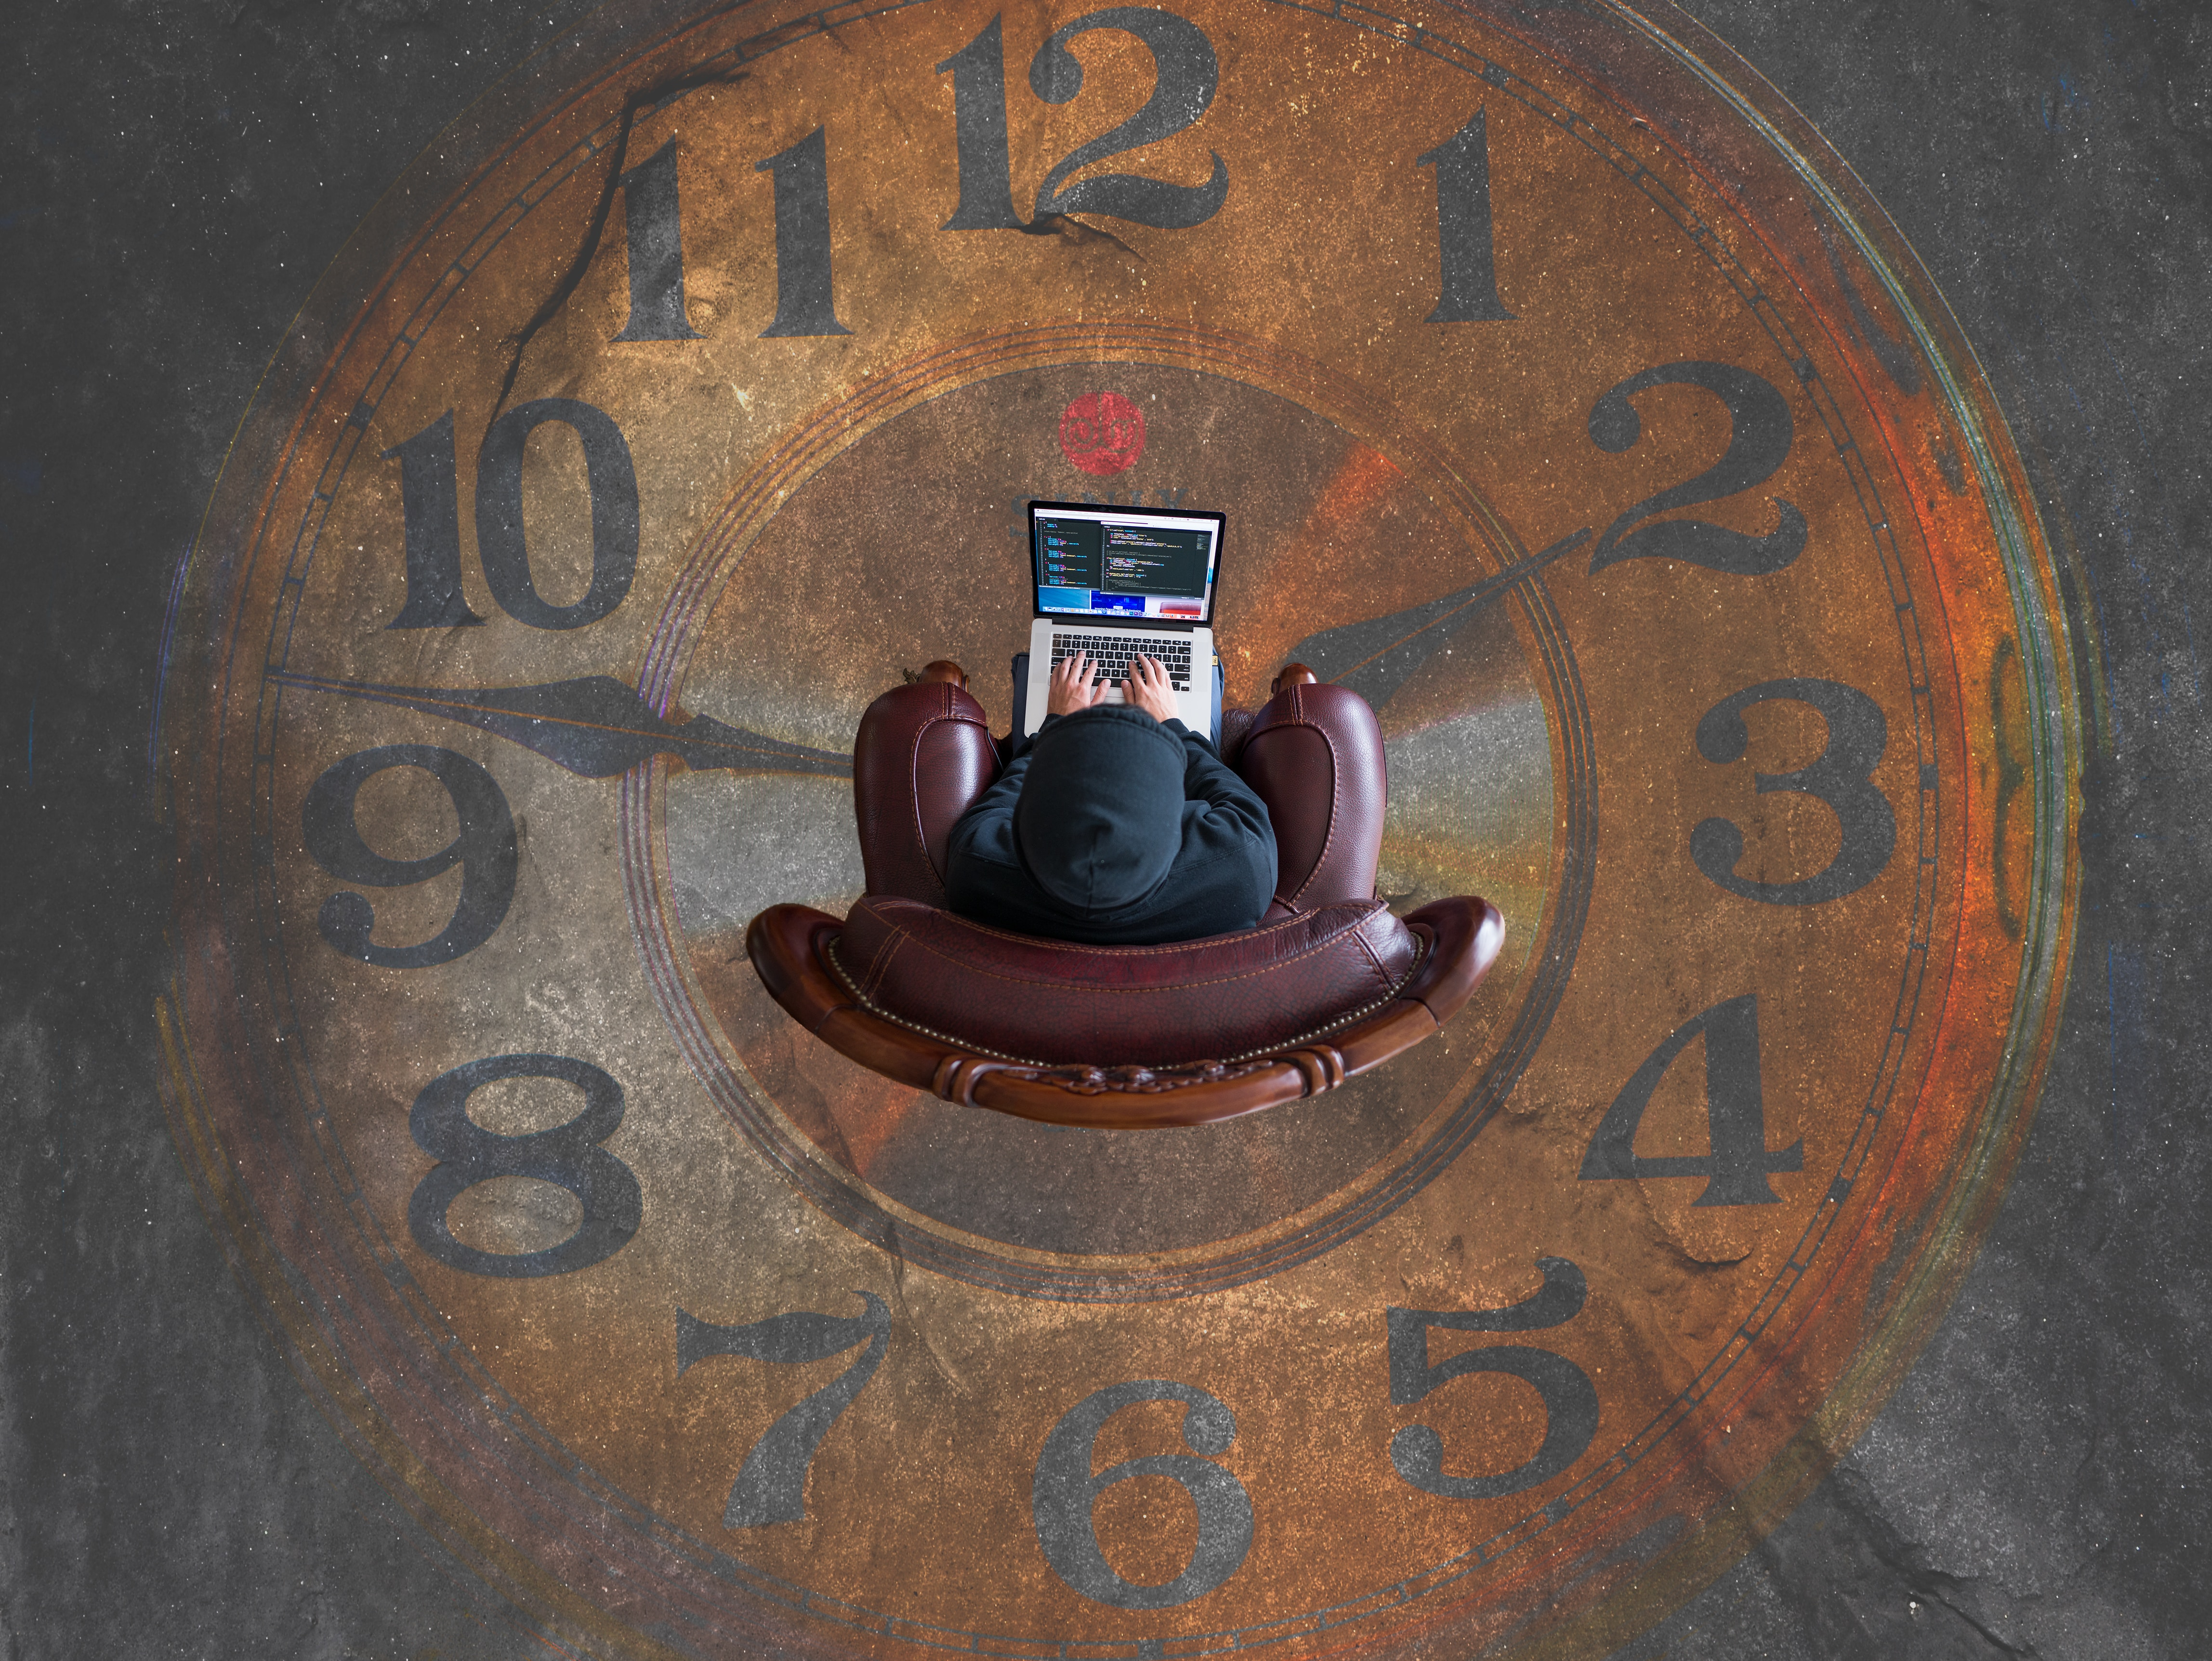 person sitting in chair on clock shaped rug